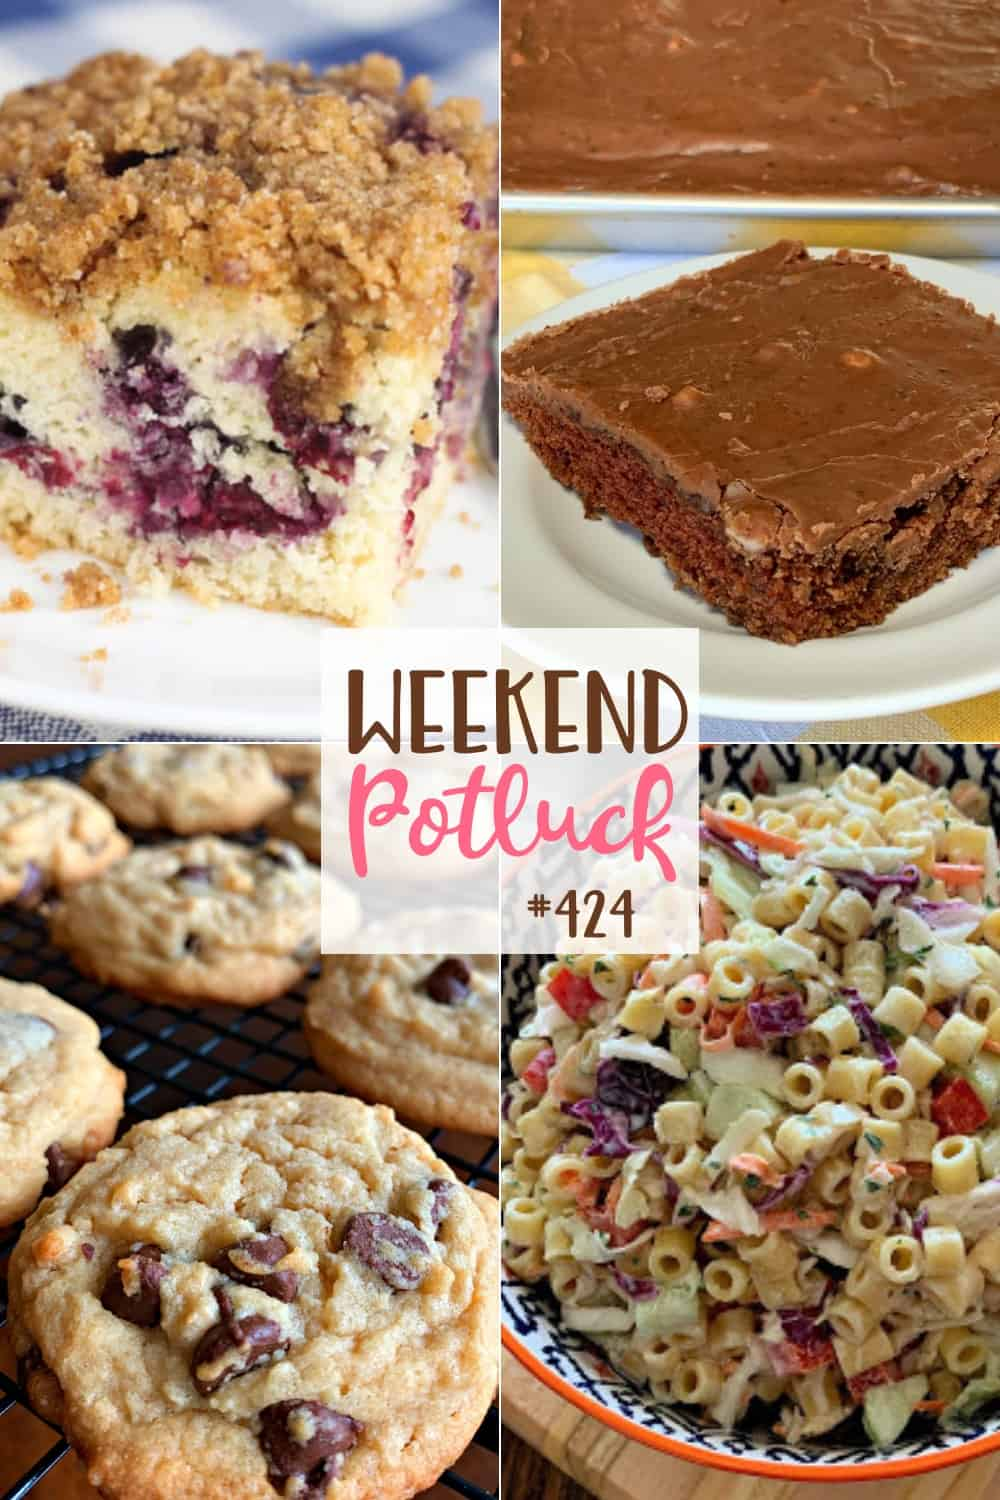 Weekend Potluck featured recipes include: Cole Slaw Pasta Salad, Texas Brownies, Blueberry Coffee Cake with Streusel Topping & Bisquick Chocolate Chip Cookies